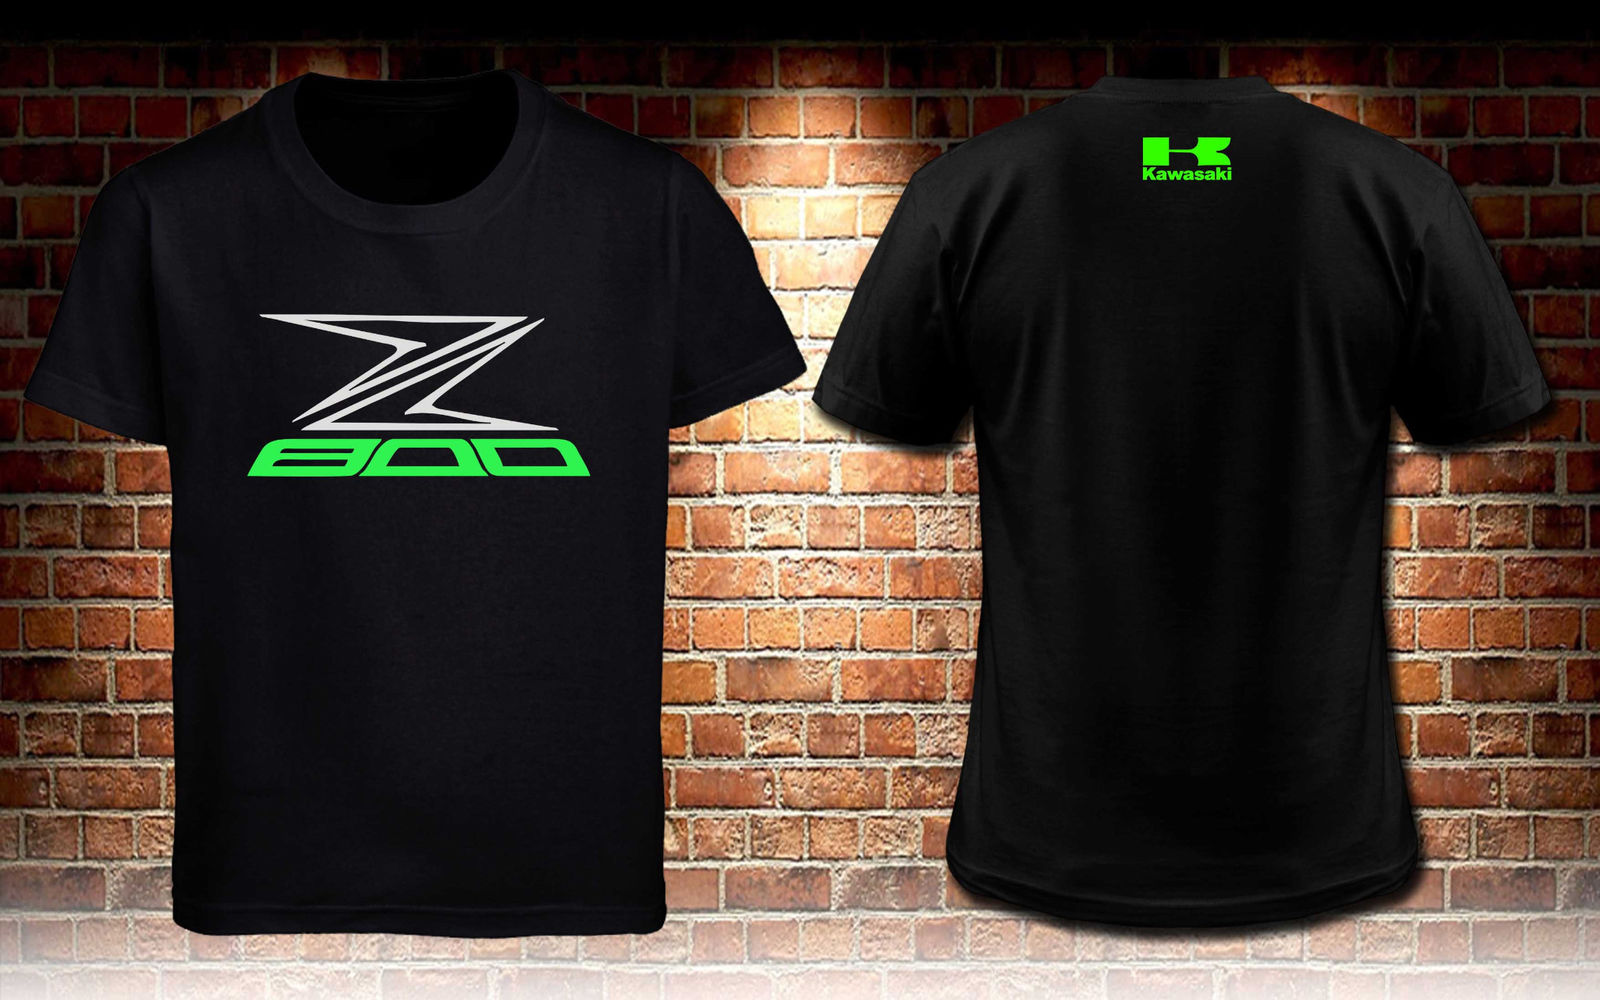 aa8f3810 Buy z800 shirt and get free shipping on AliExpress.com